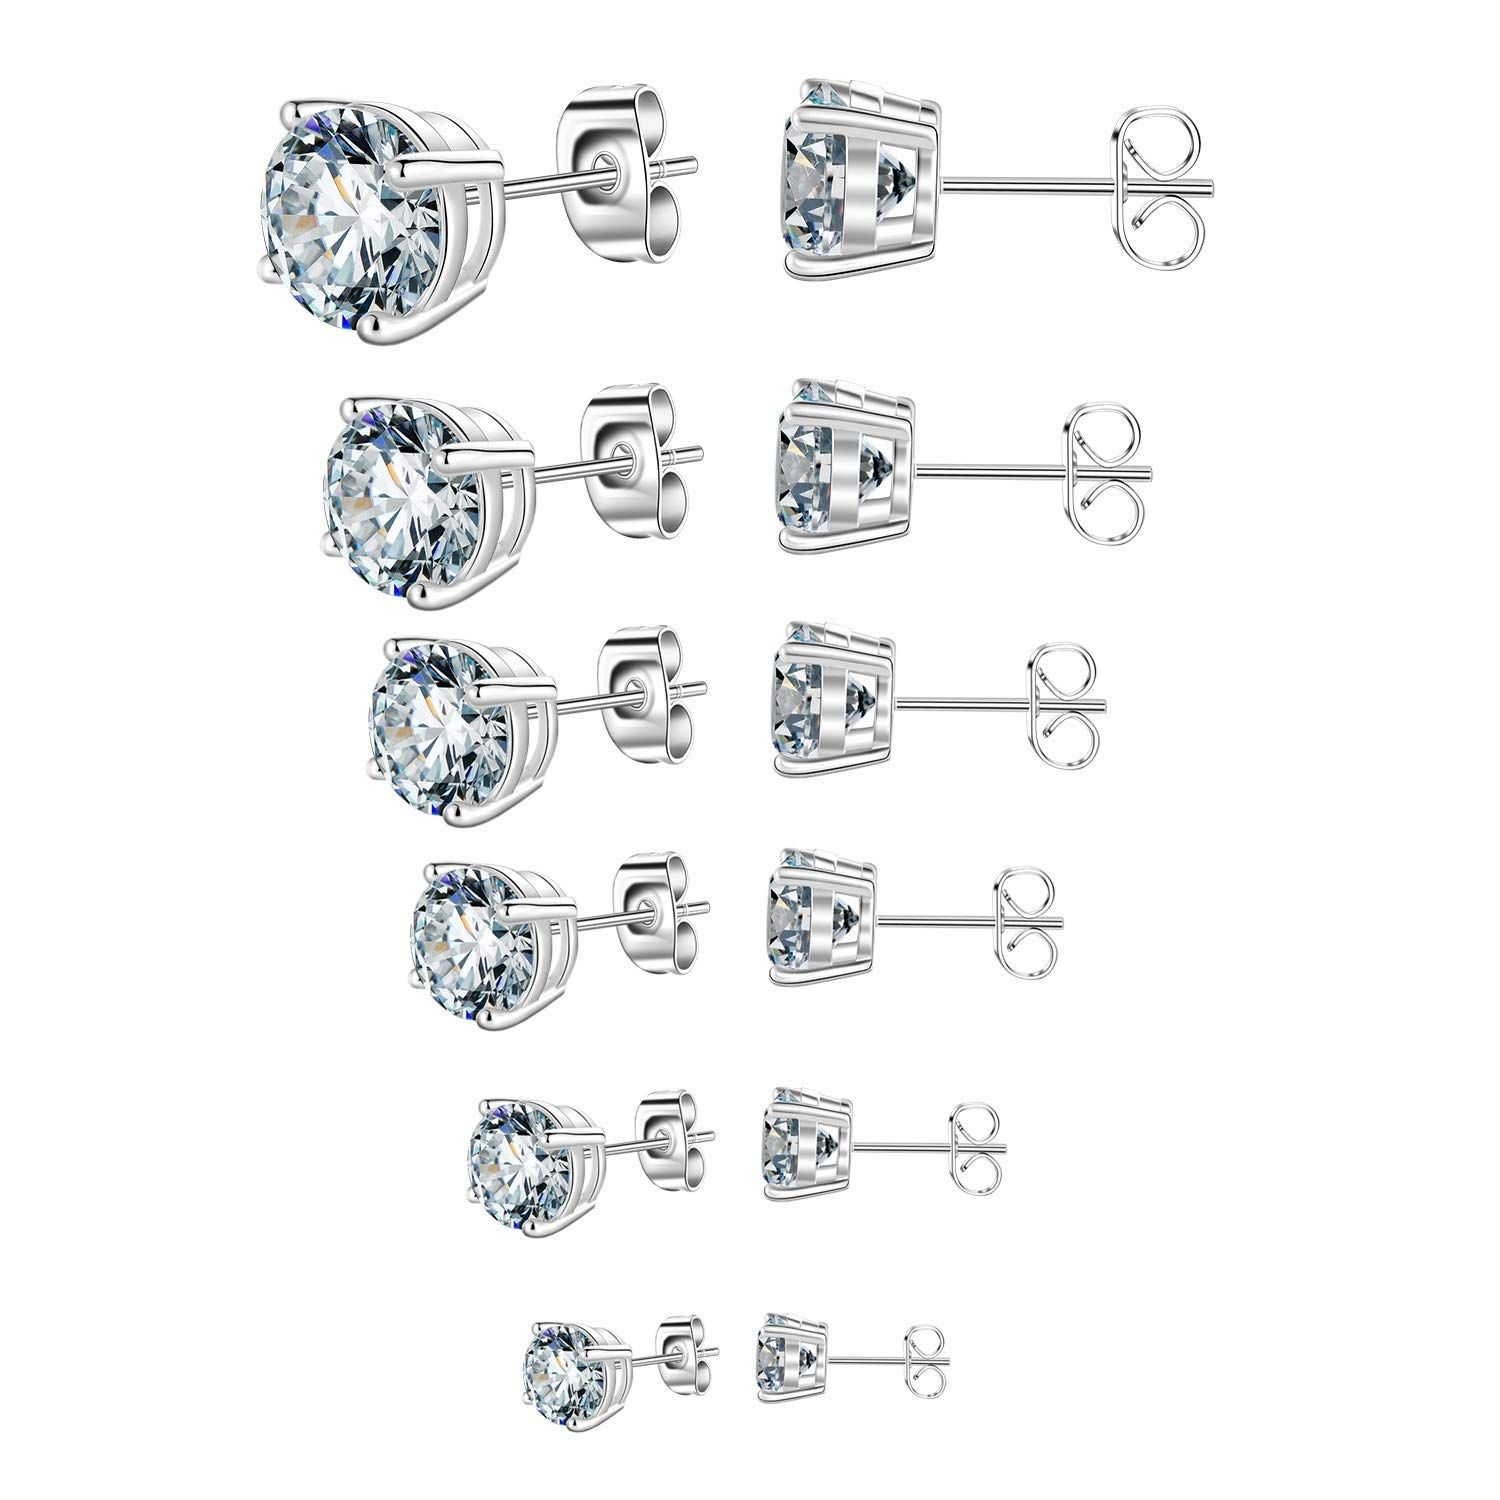 ddd3dca7a Outop Stud Earrings for Women Round Cubic Zirconia Stainless Steel Earrings  Studs Plated White Gold, 3-8mm (6 Pairs)